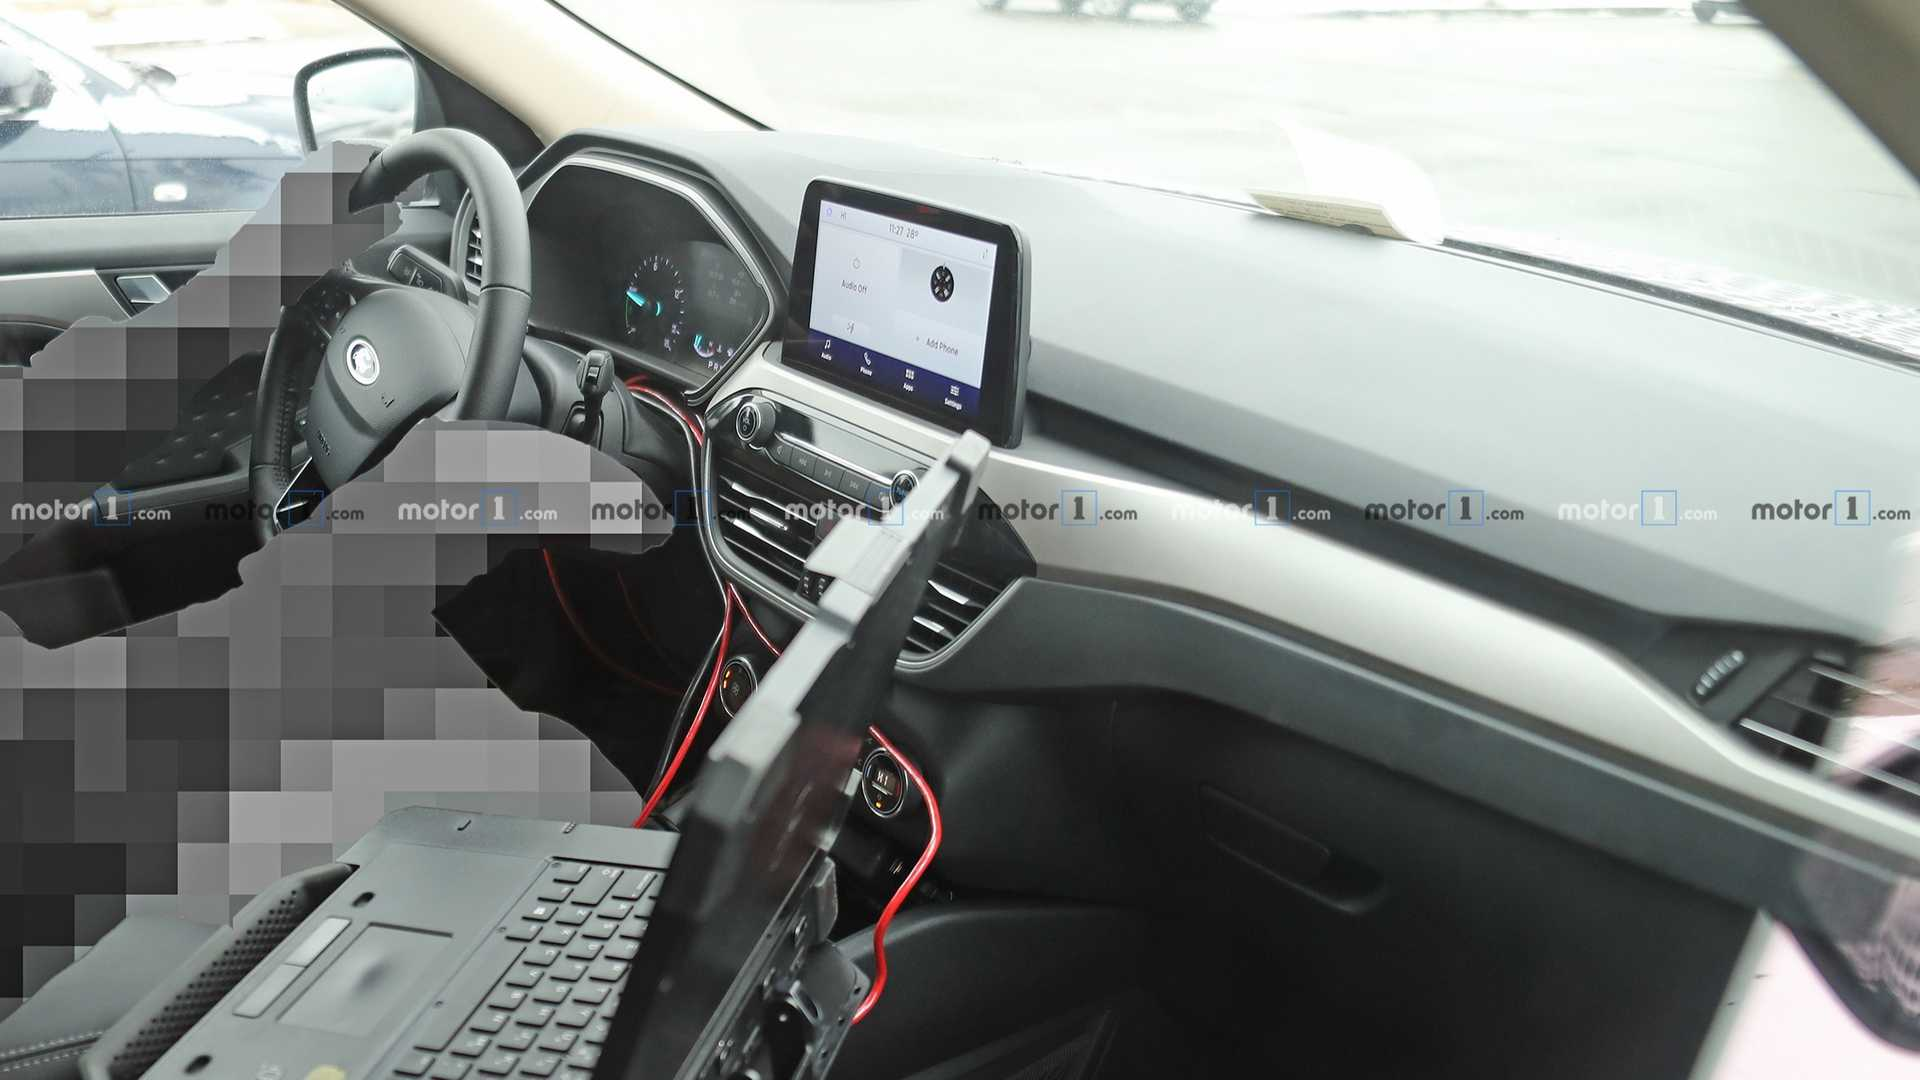 2020-ford-​escape-int​erior-spy-​photo